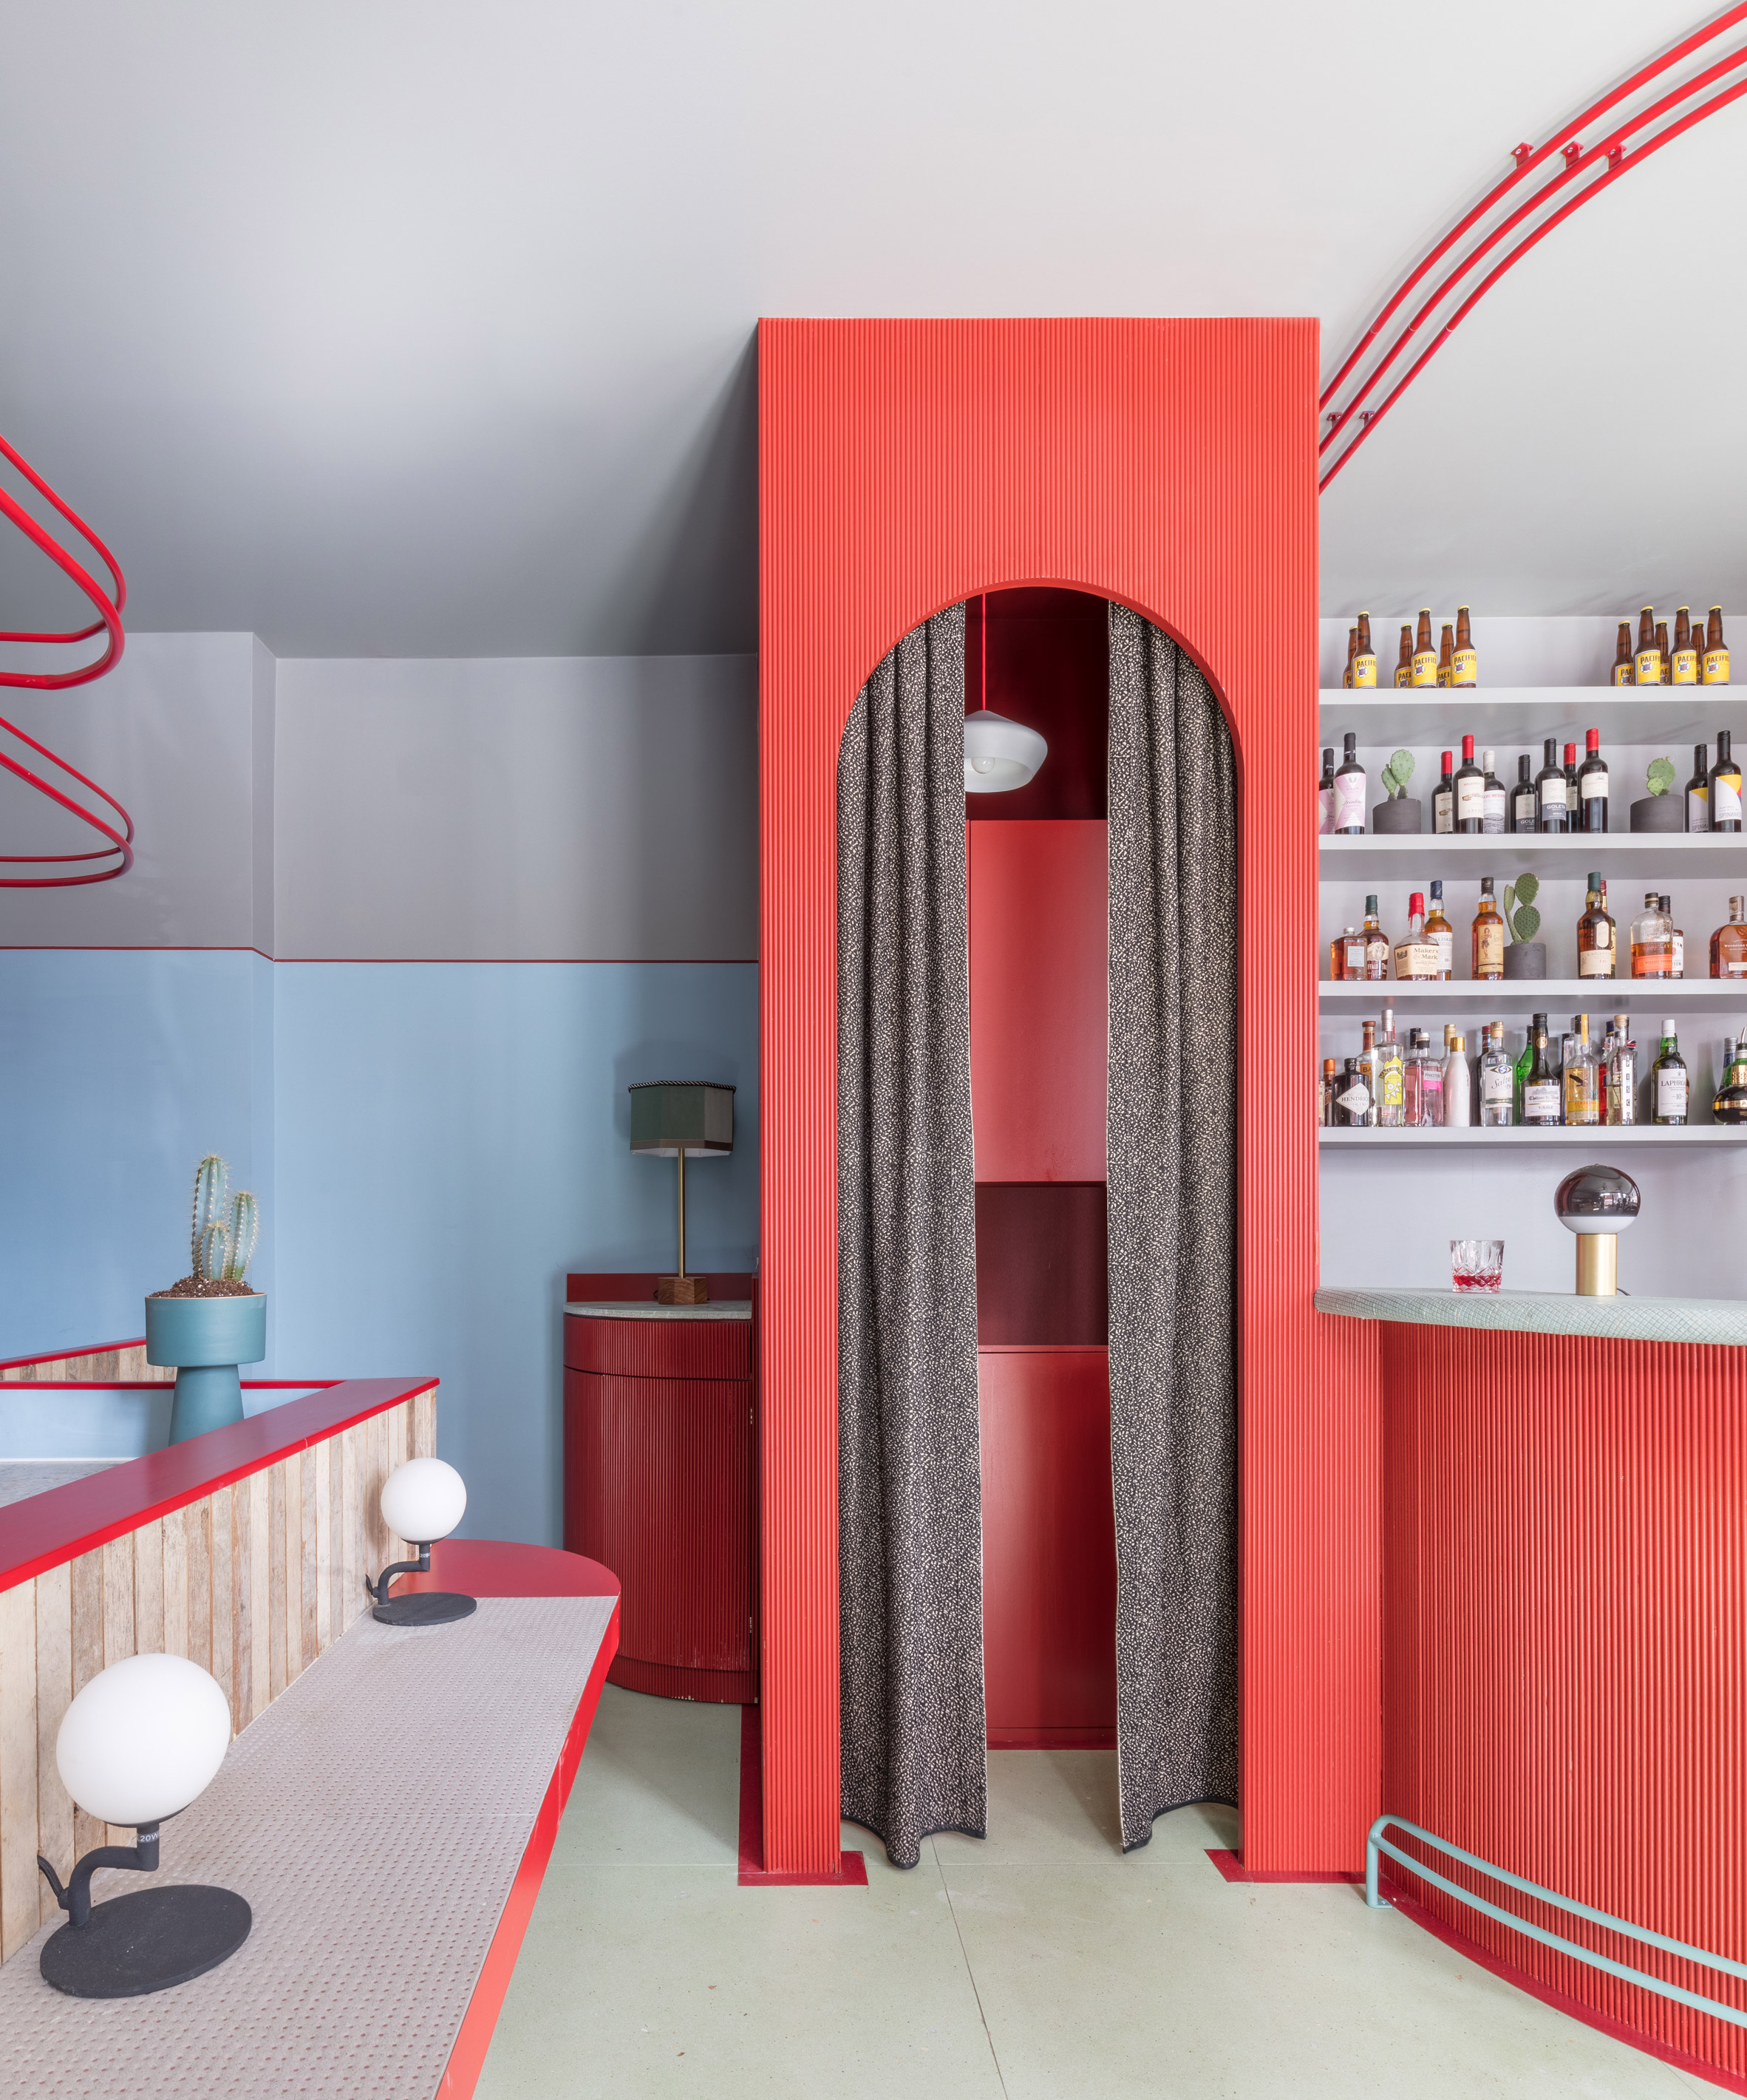 Sella Concept avoids South American cliches in retro-themed London restaurant Piraña